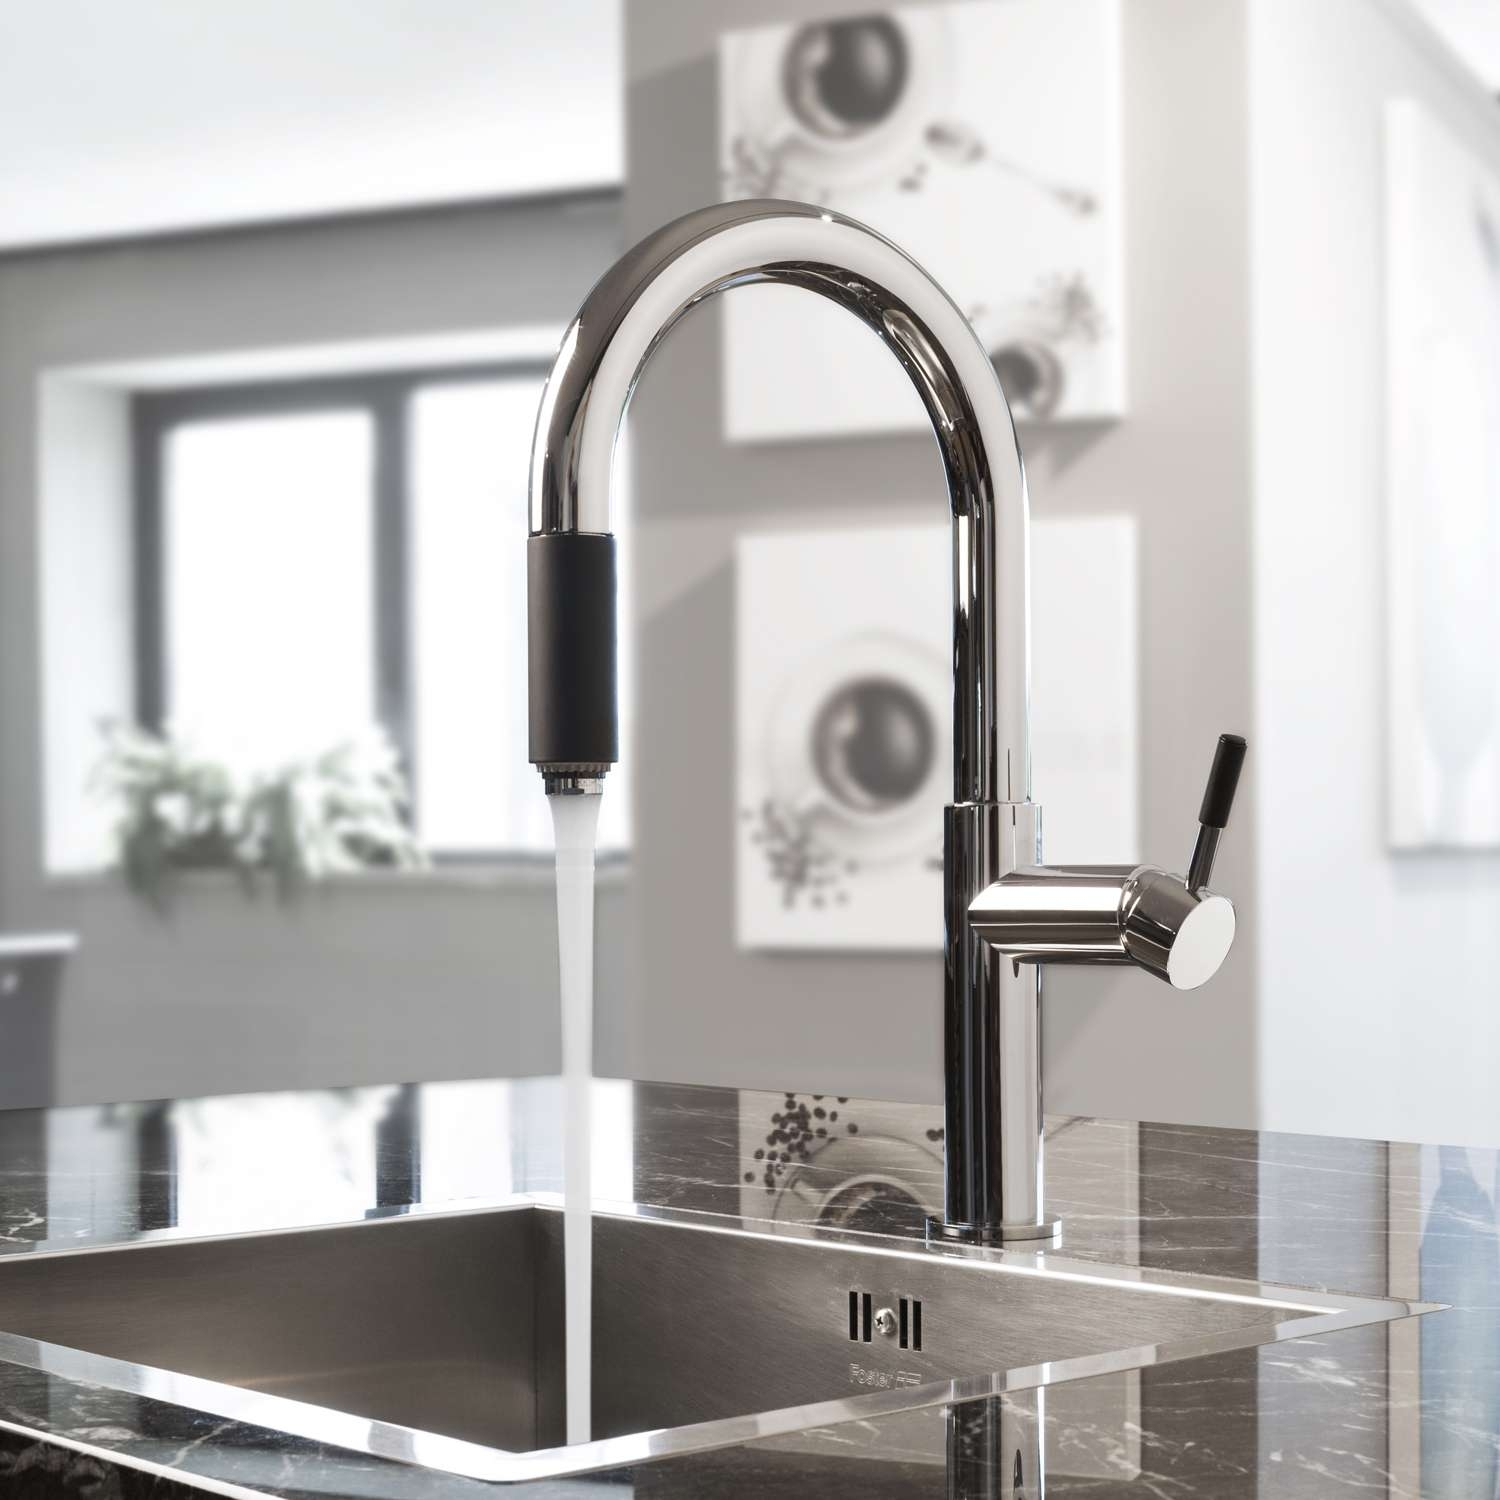 Ideas, best images about for the kitchen gallery with graff faucets with regard to size 1500 x 1500  .